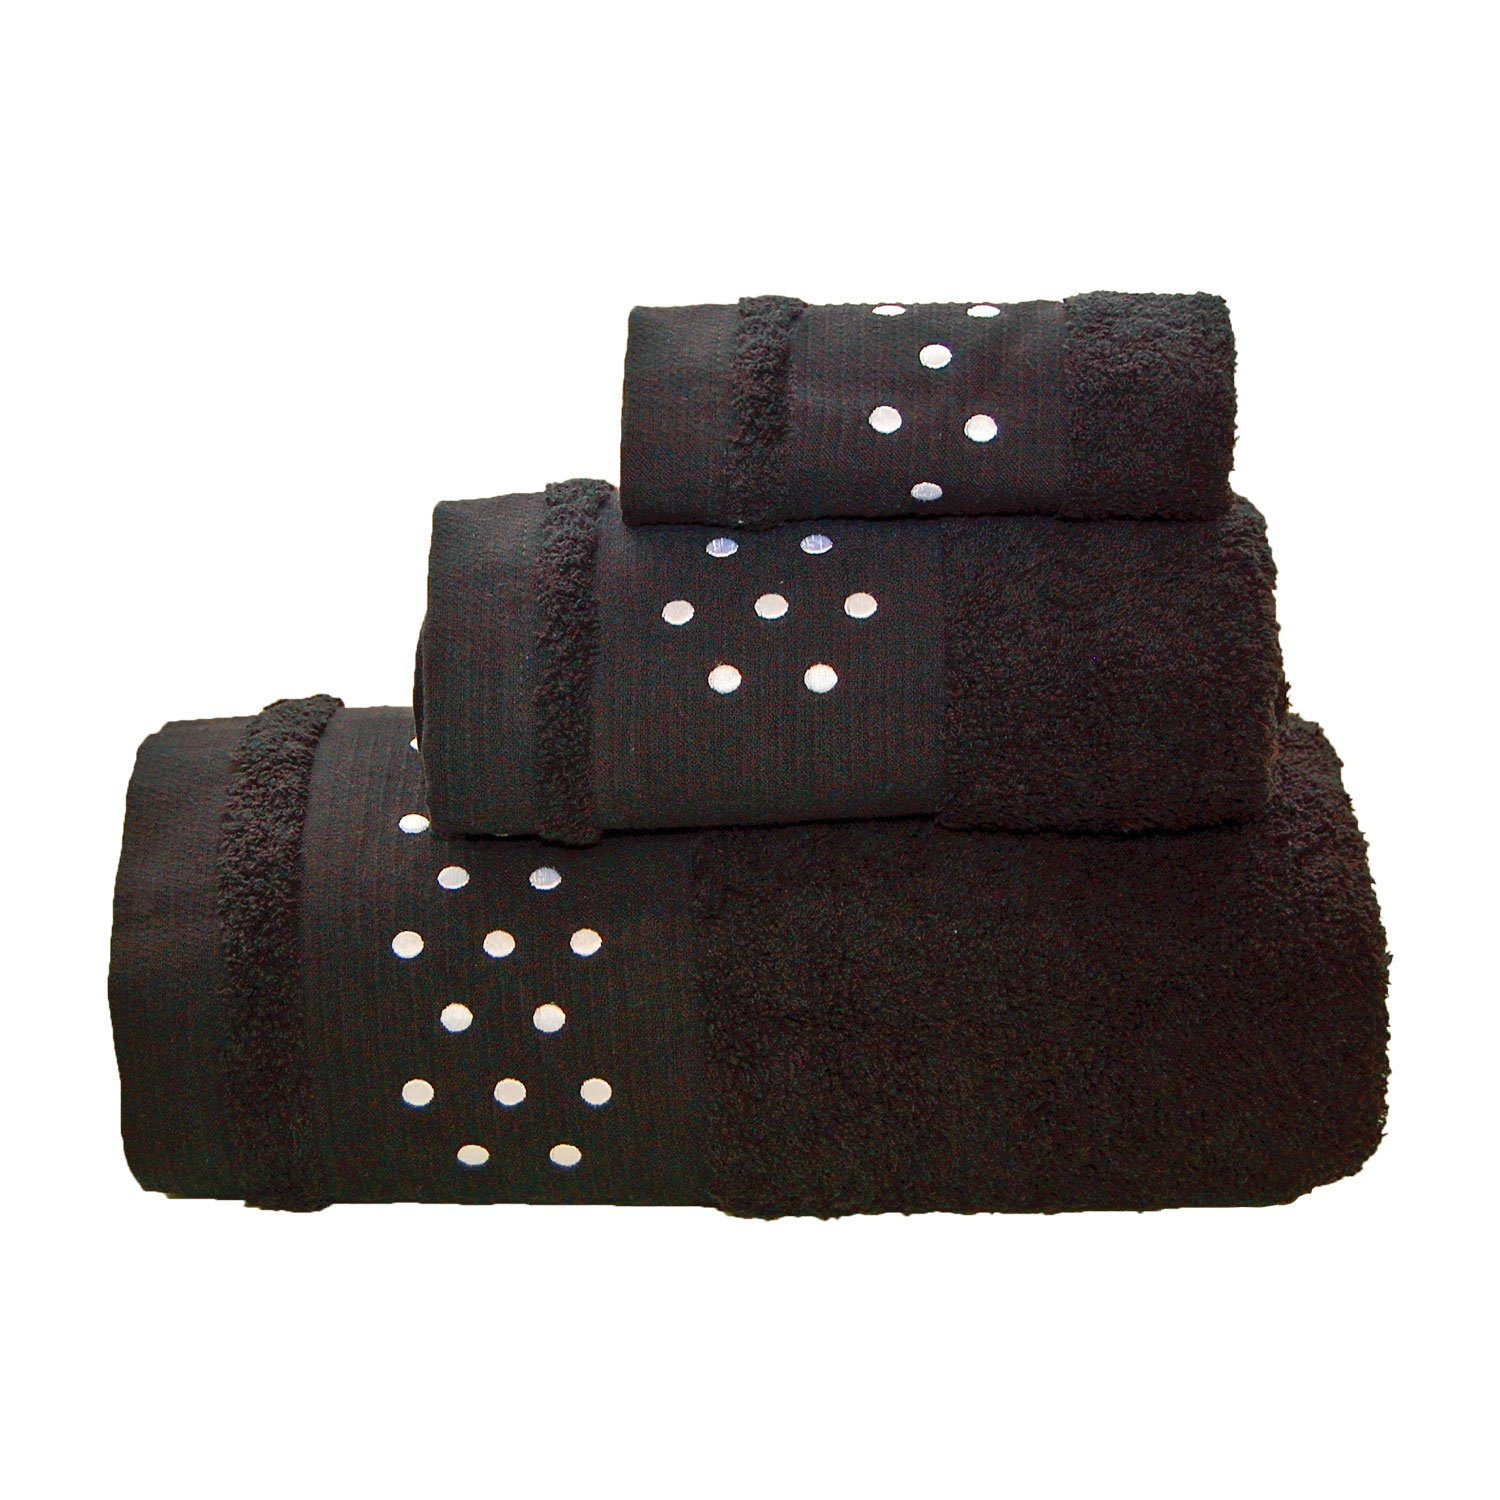 BgEurope Spots Bath Towels - 3 Pieces Set - Bath Sheet + Hand Towel + FACE Towel - Black W/White Maria Teixeira e Andrade Lda